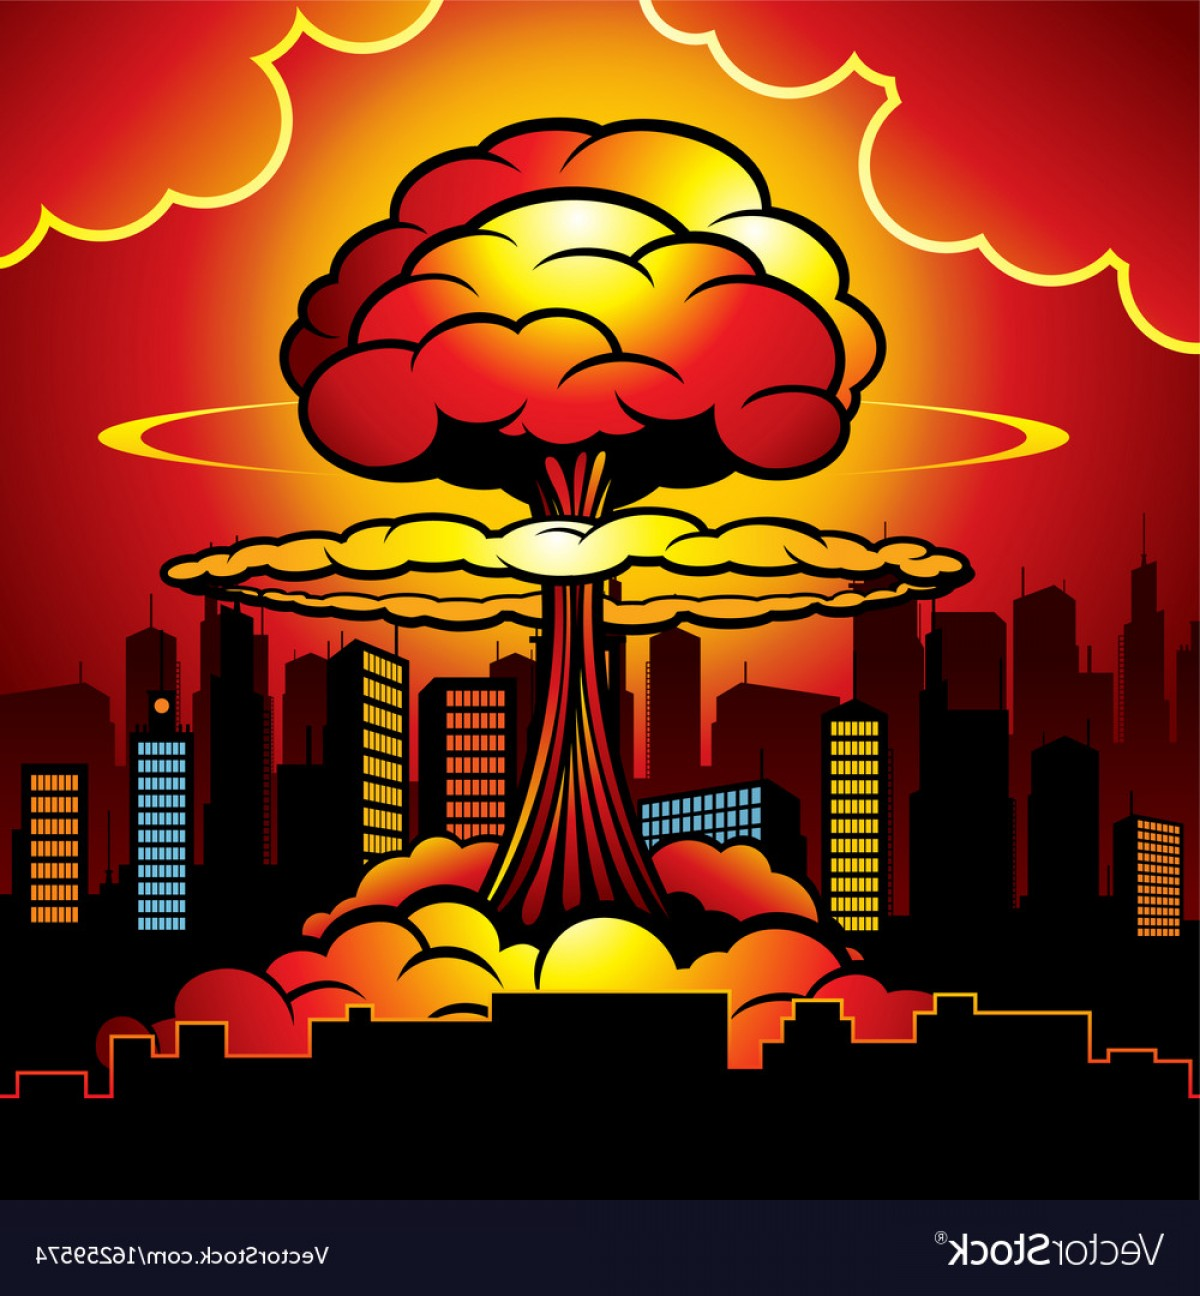 Atomic Bomb Explosion Vector: Burning City With Nuclear Explosion Of Atomic Bomb Vector